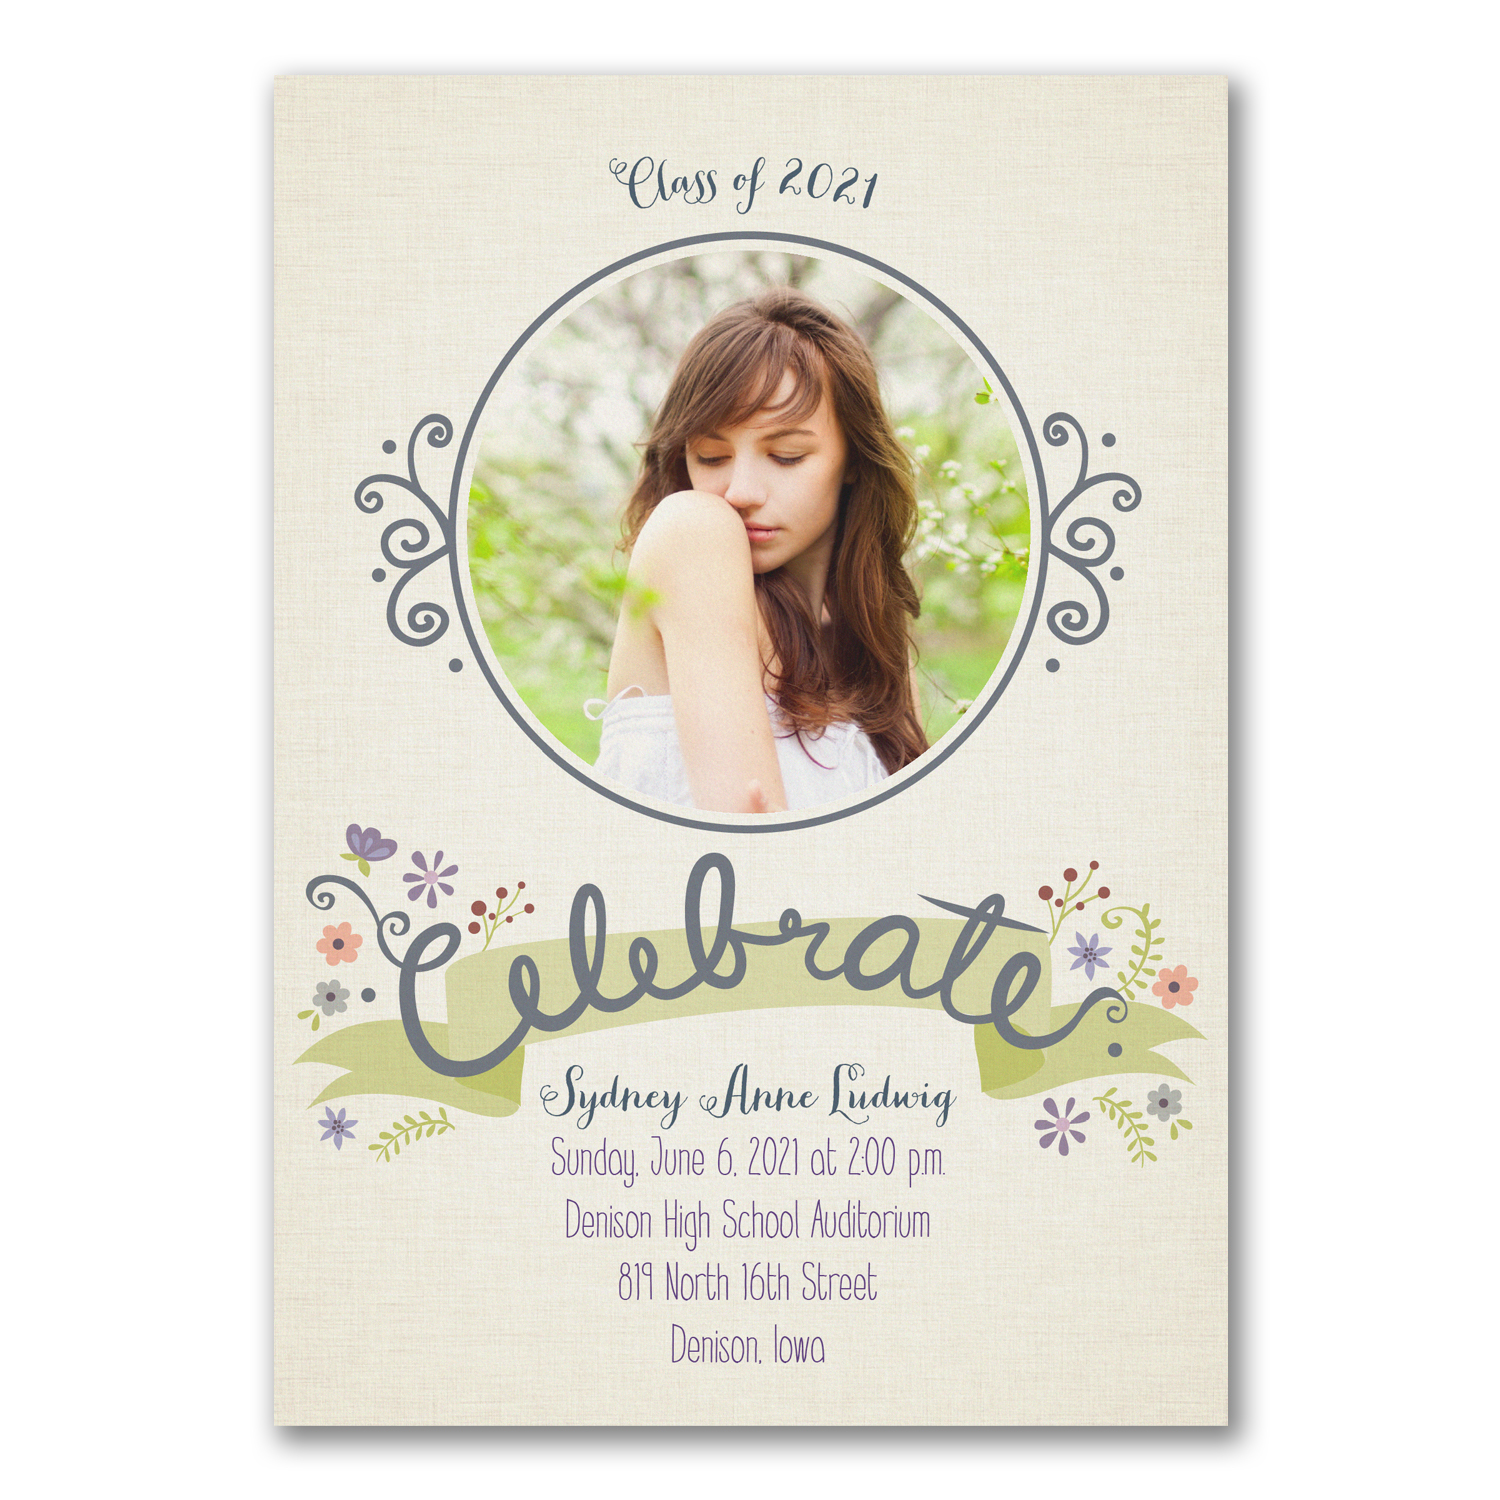 boho grad photo graduation announcement